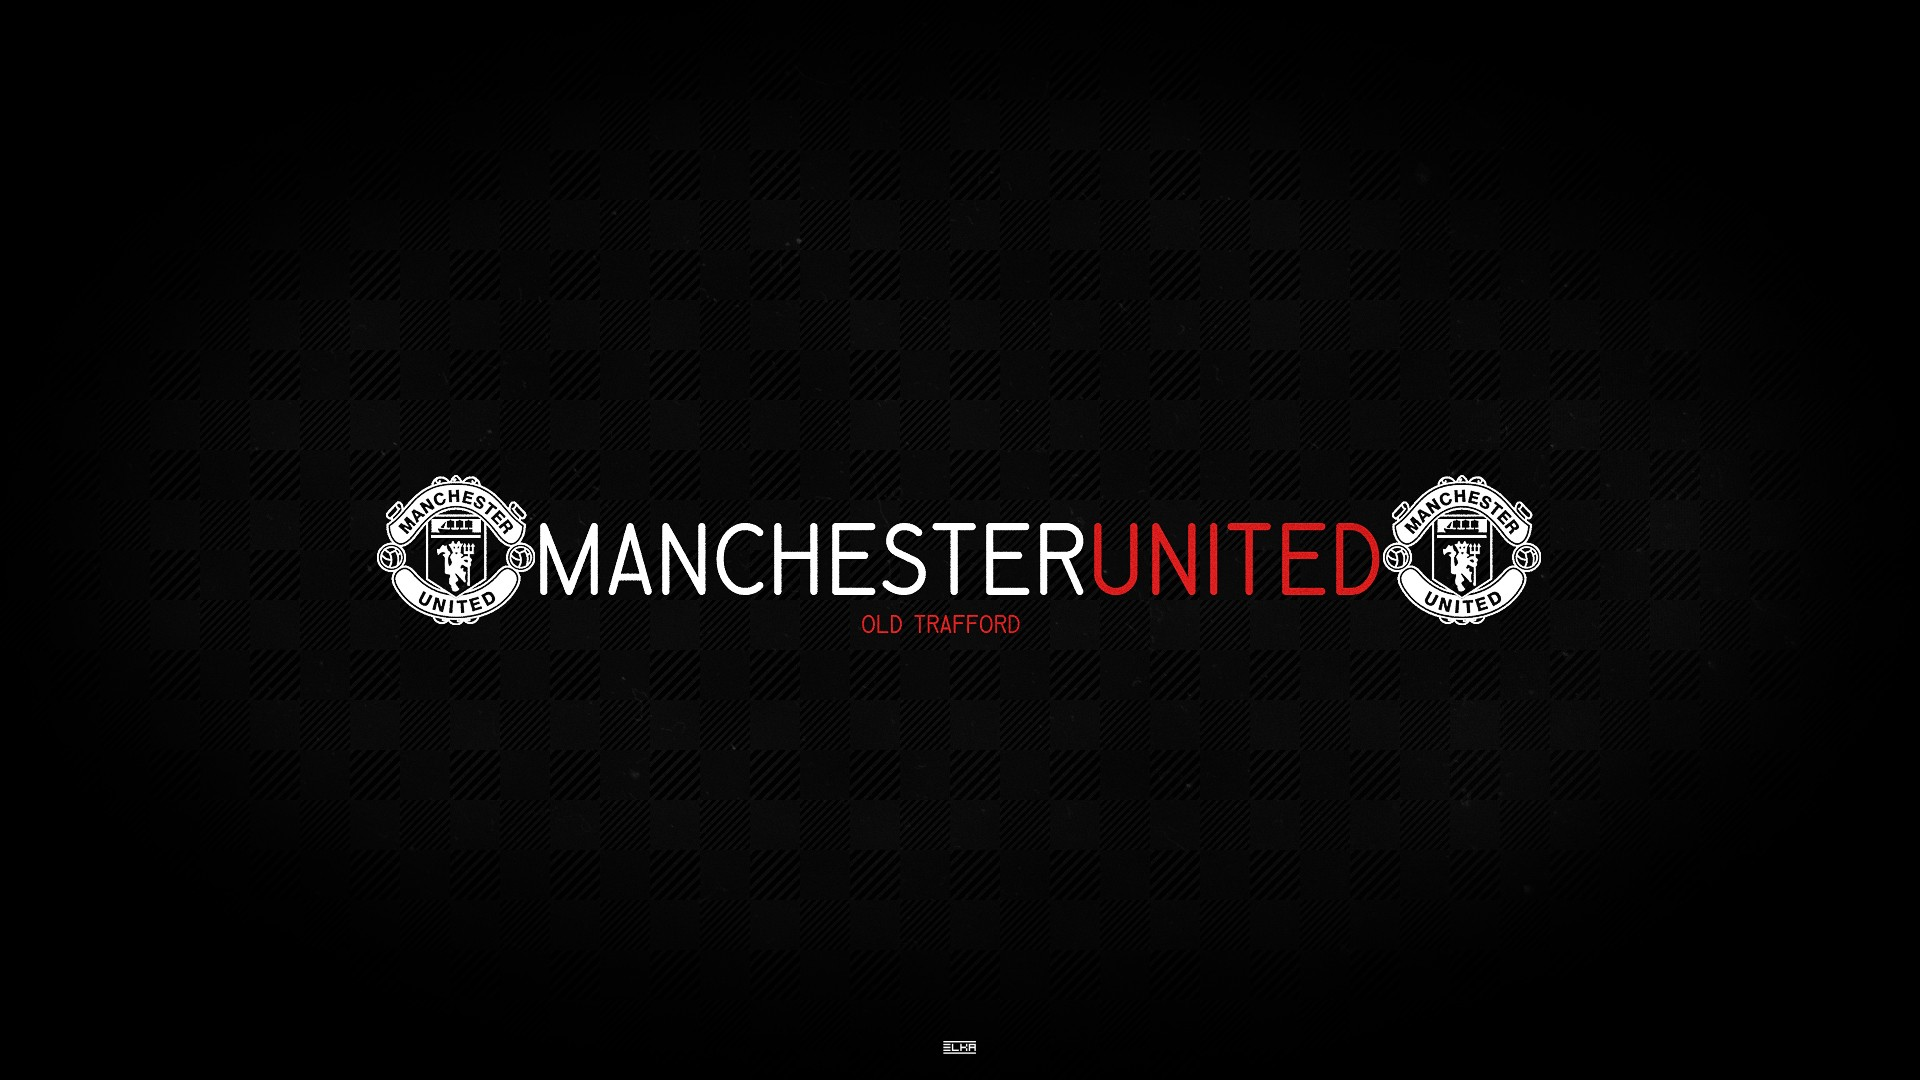 Logo Football Wallpaper The Red Devil Wallpaper with 1920x1080 1920x1080